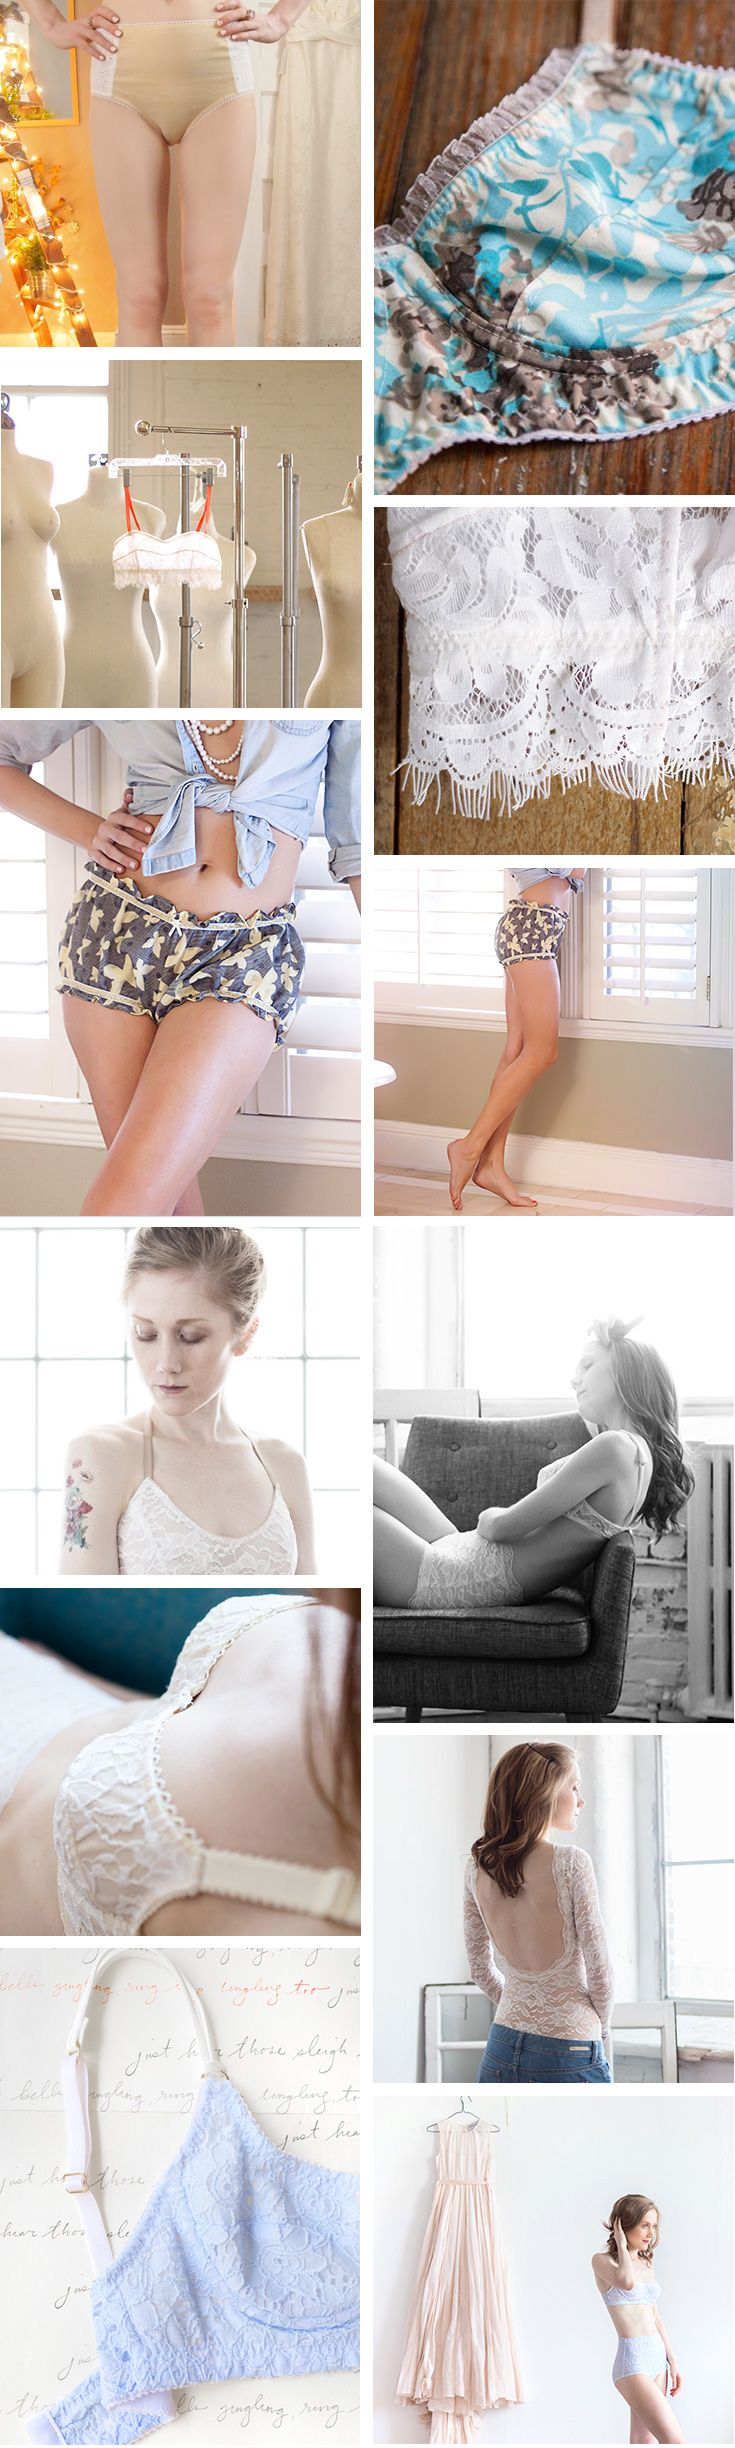 Madalynne Intimates and Lingerie - Bralettes to Buy & Sew ...